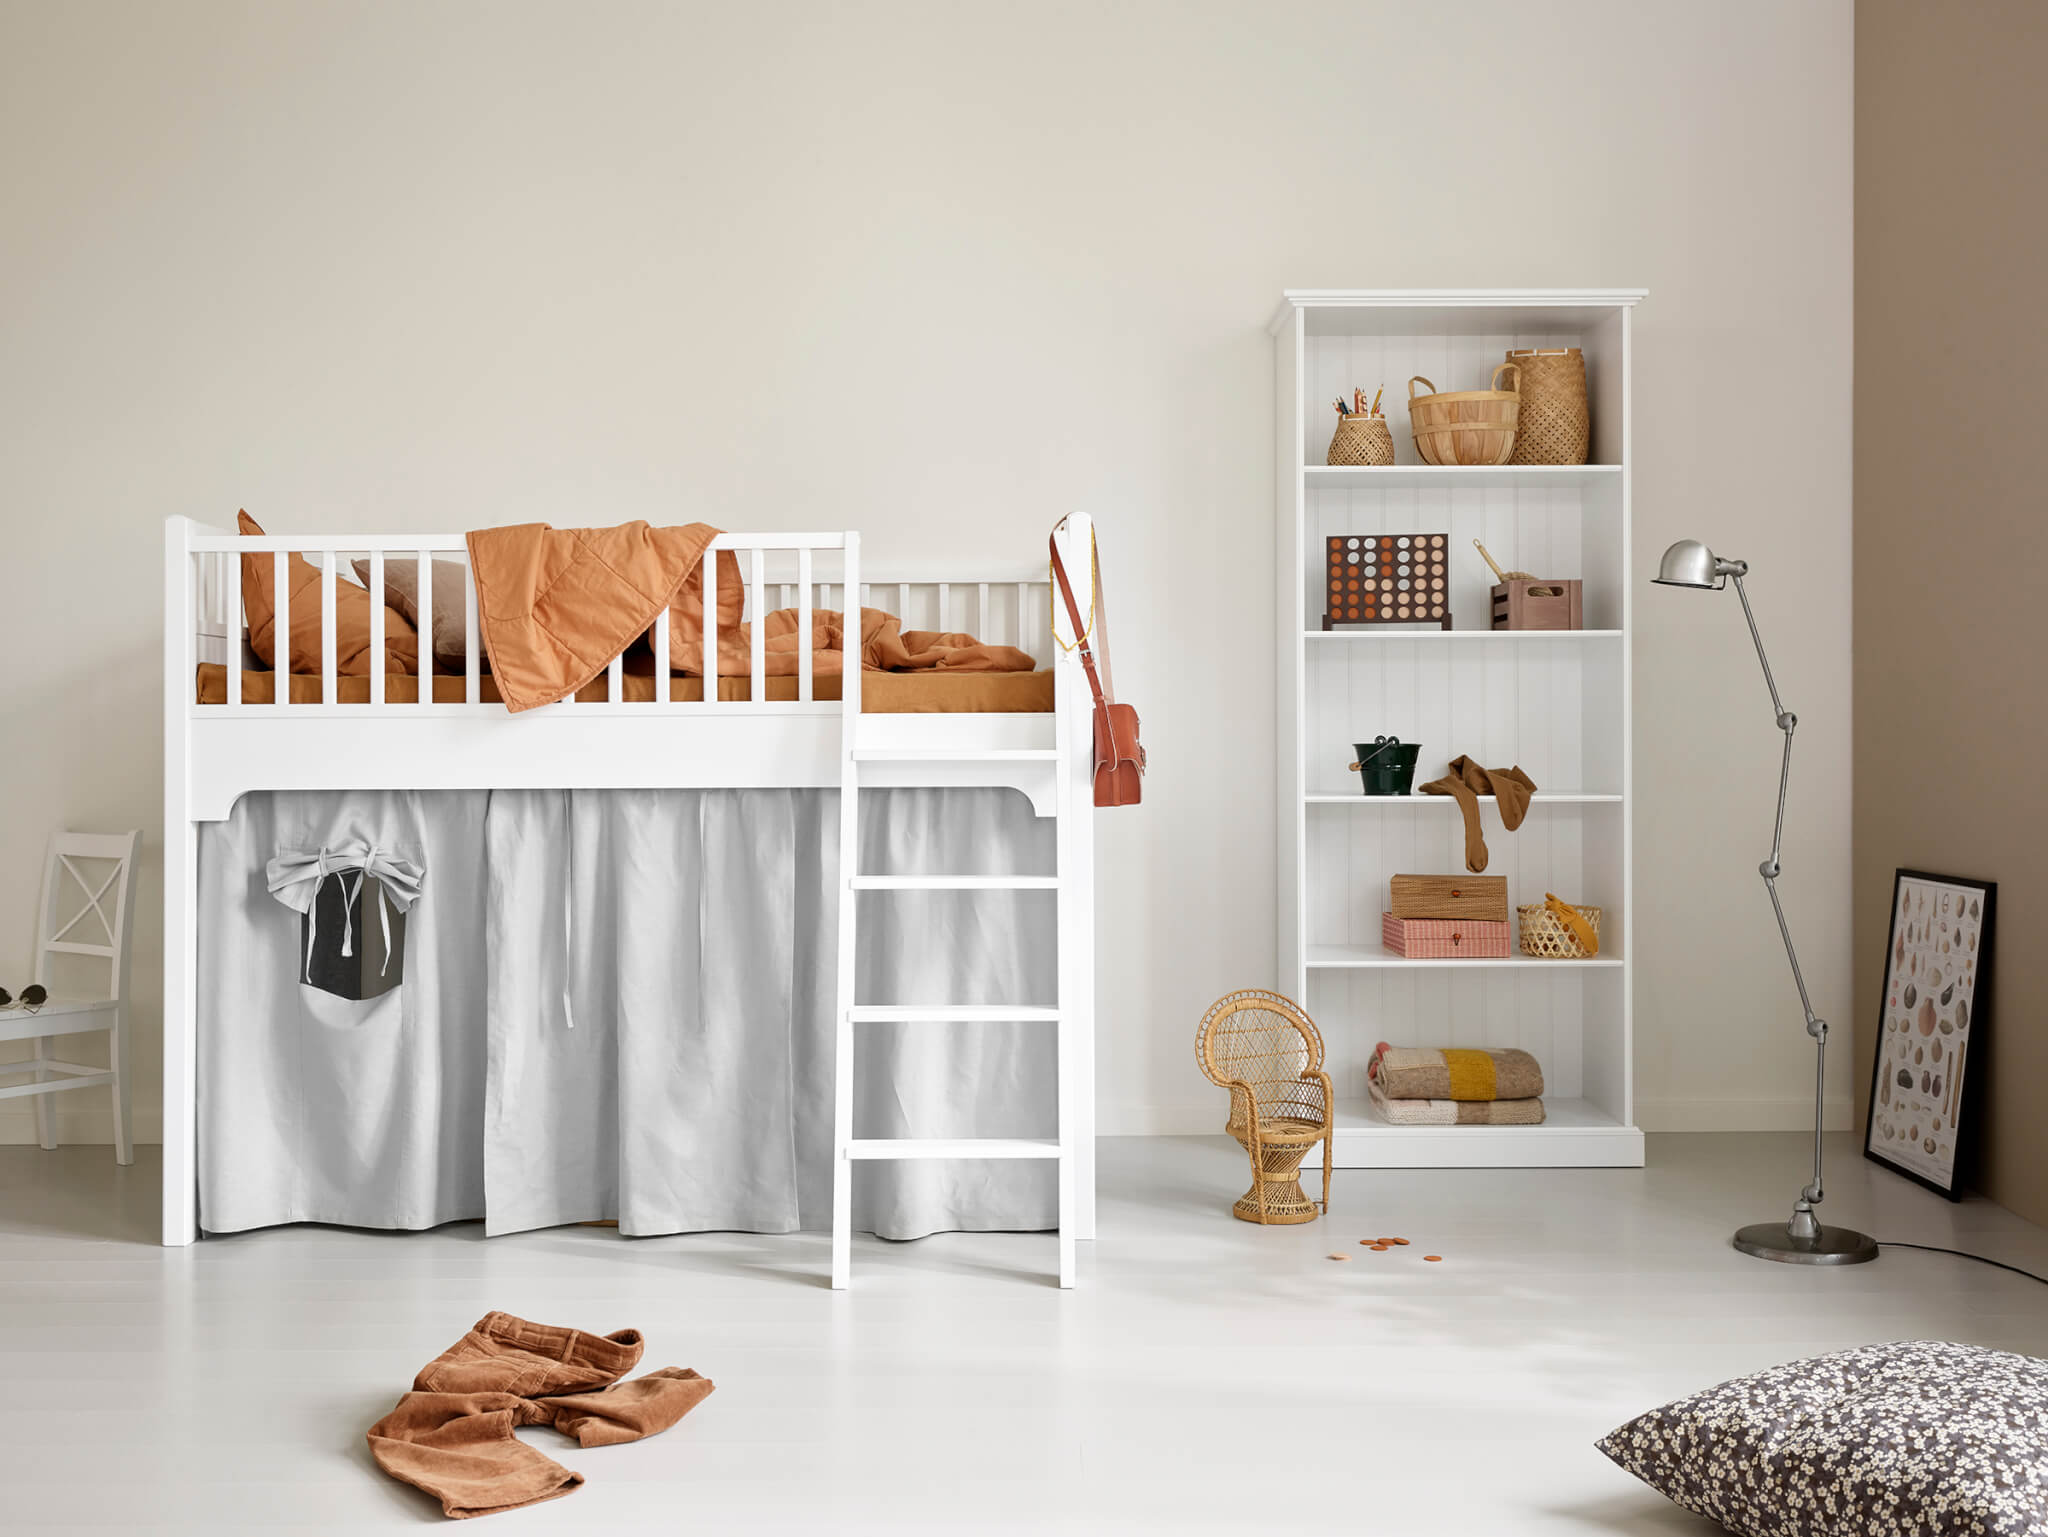 OLIVER FURNITURE Seaside halbhohes Spielbett mit Regal